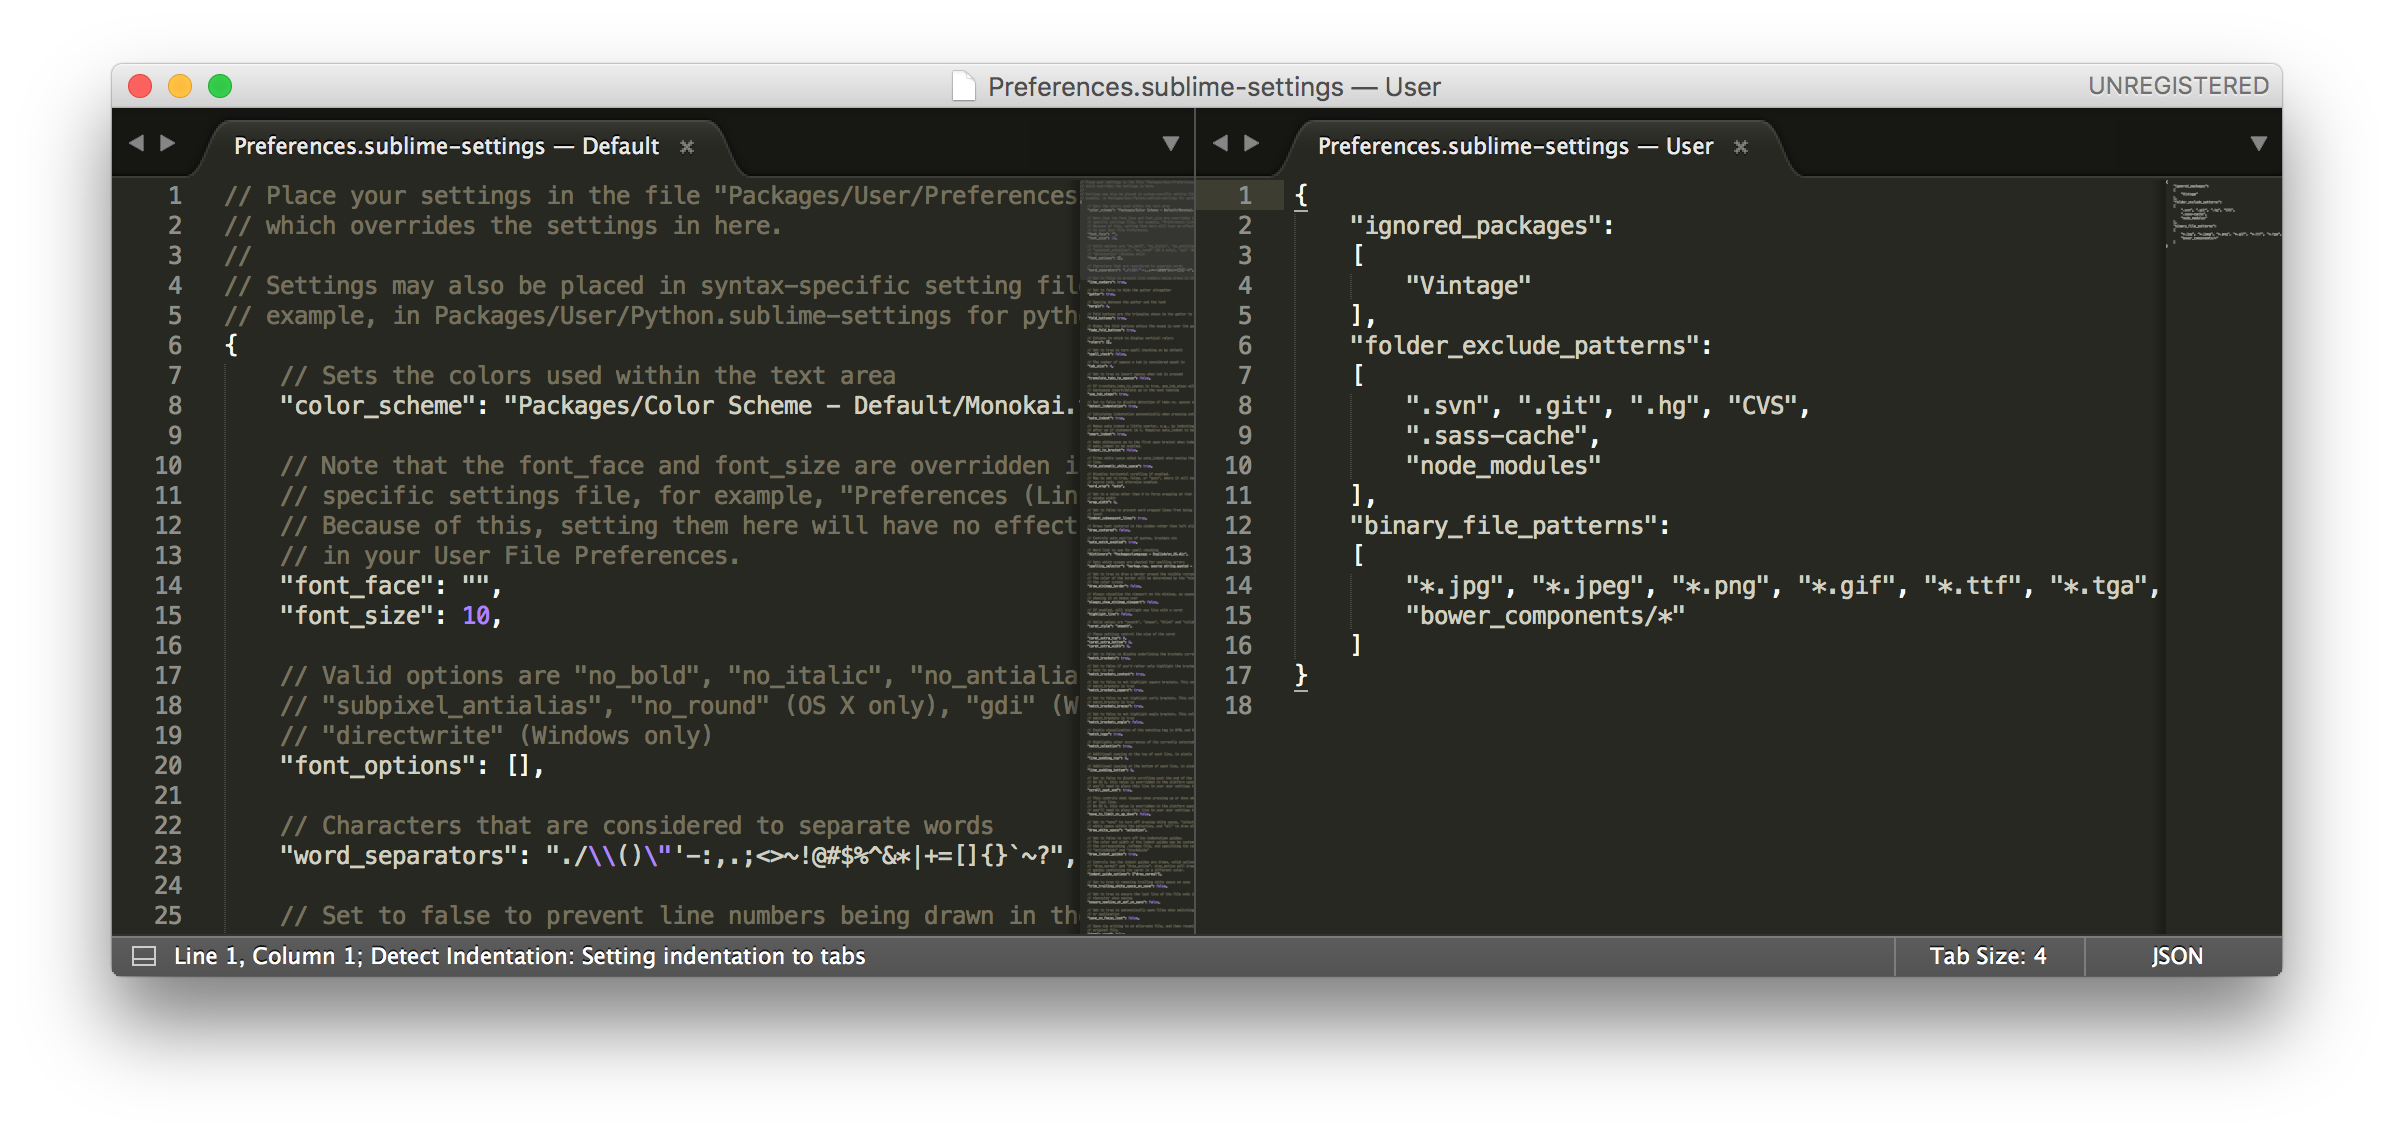 Sublime Text 3 - Preferences.sublime-settings